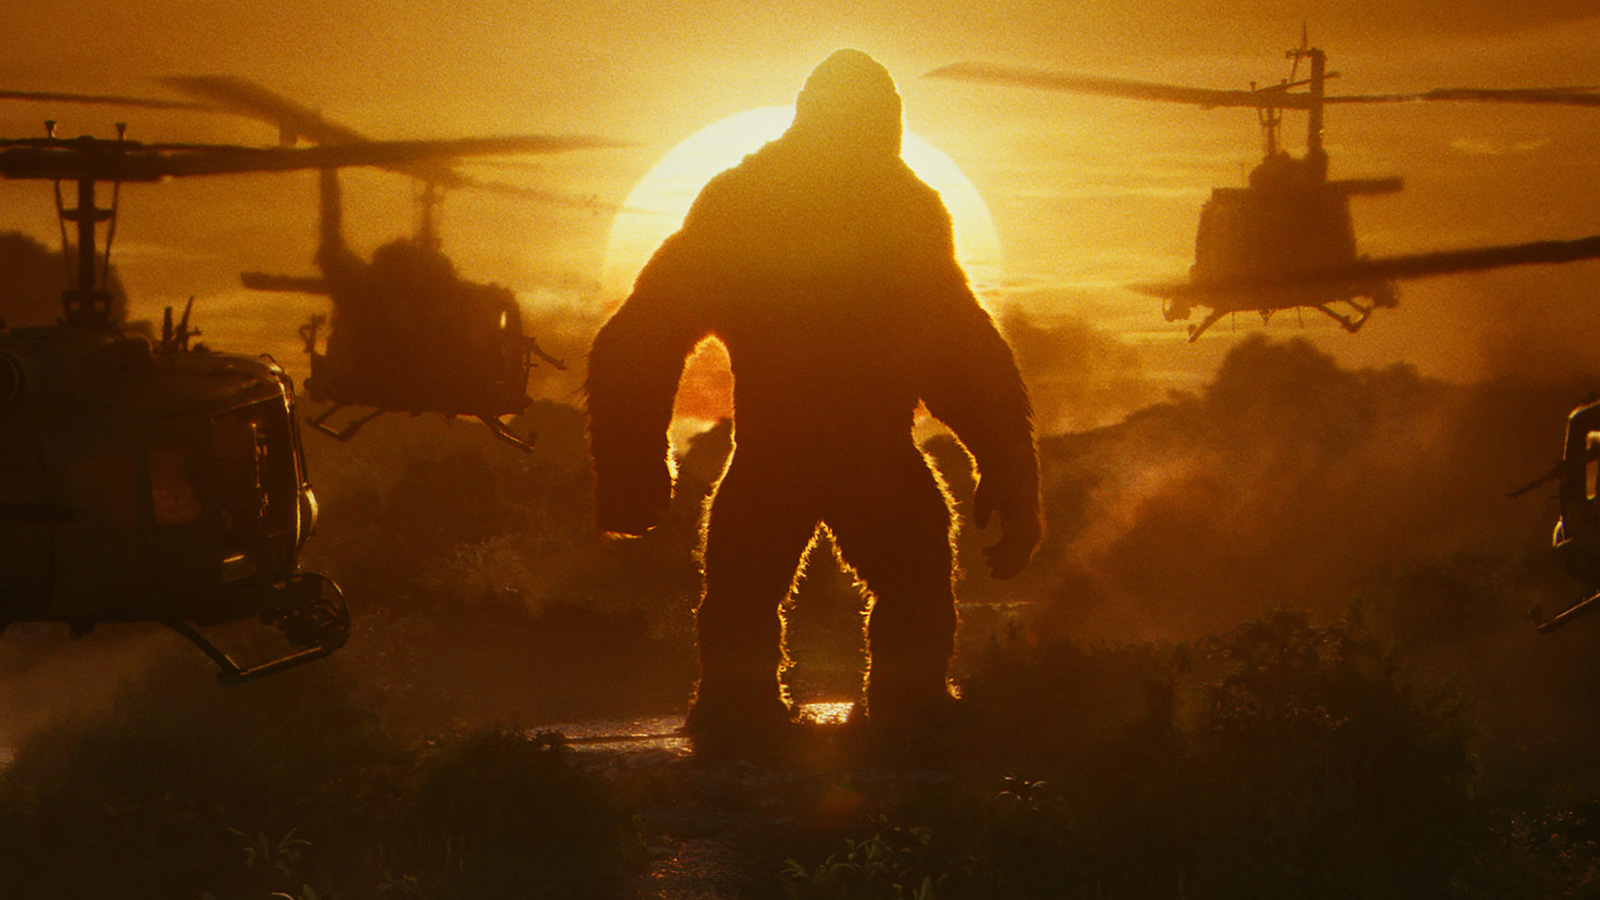 Say what you want about the movie, this image is poetry.